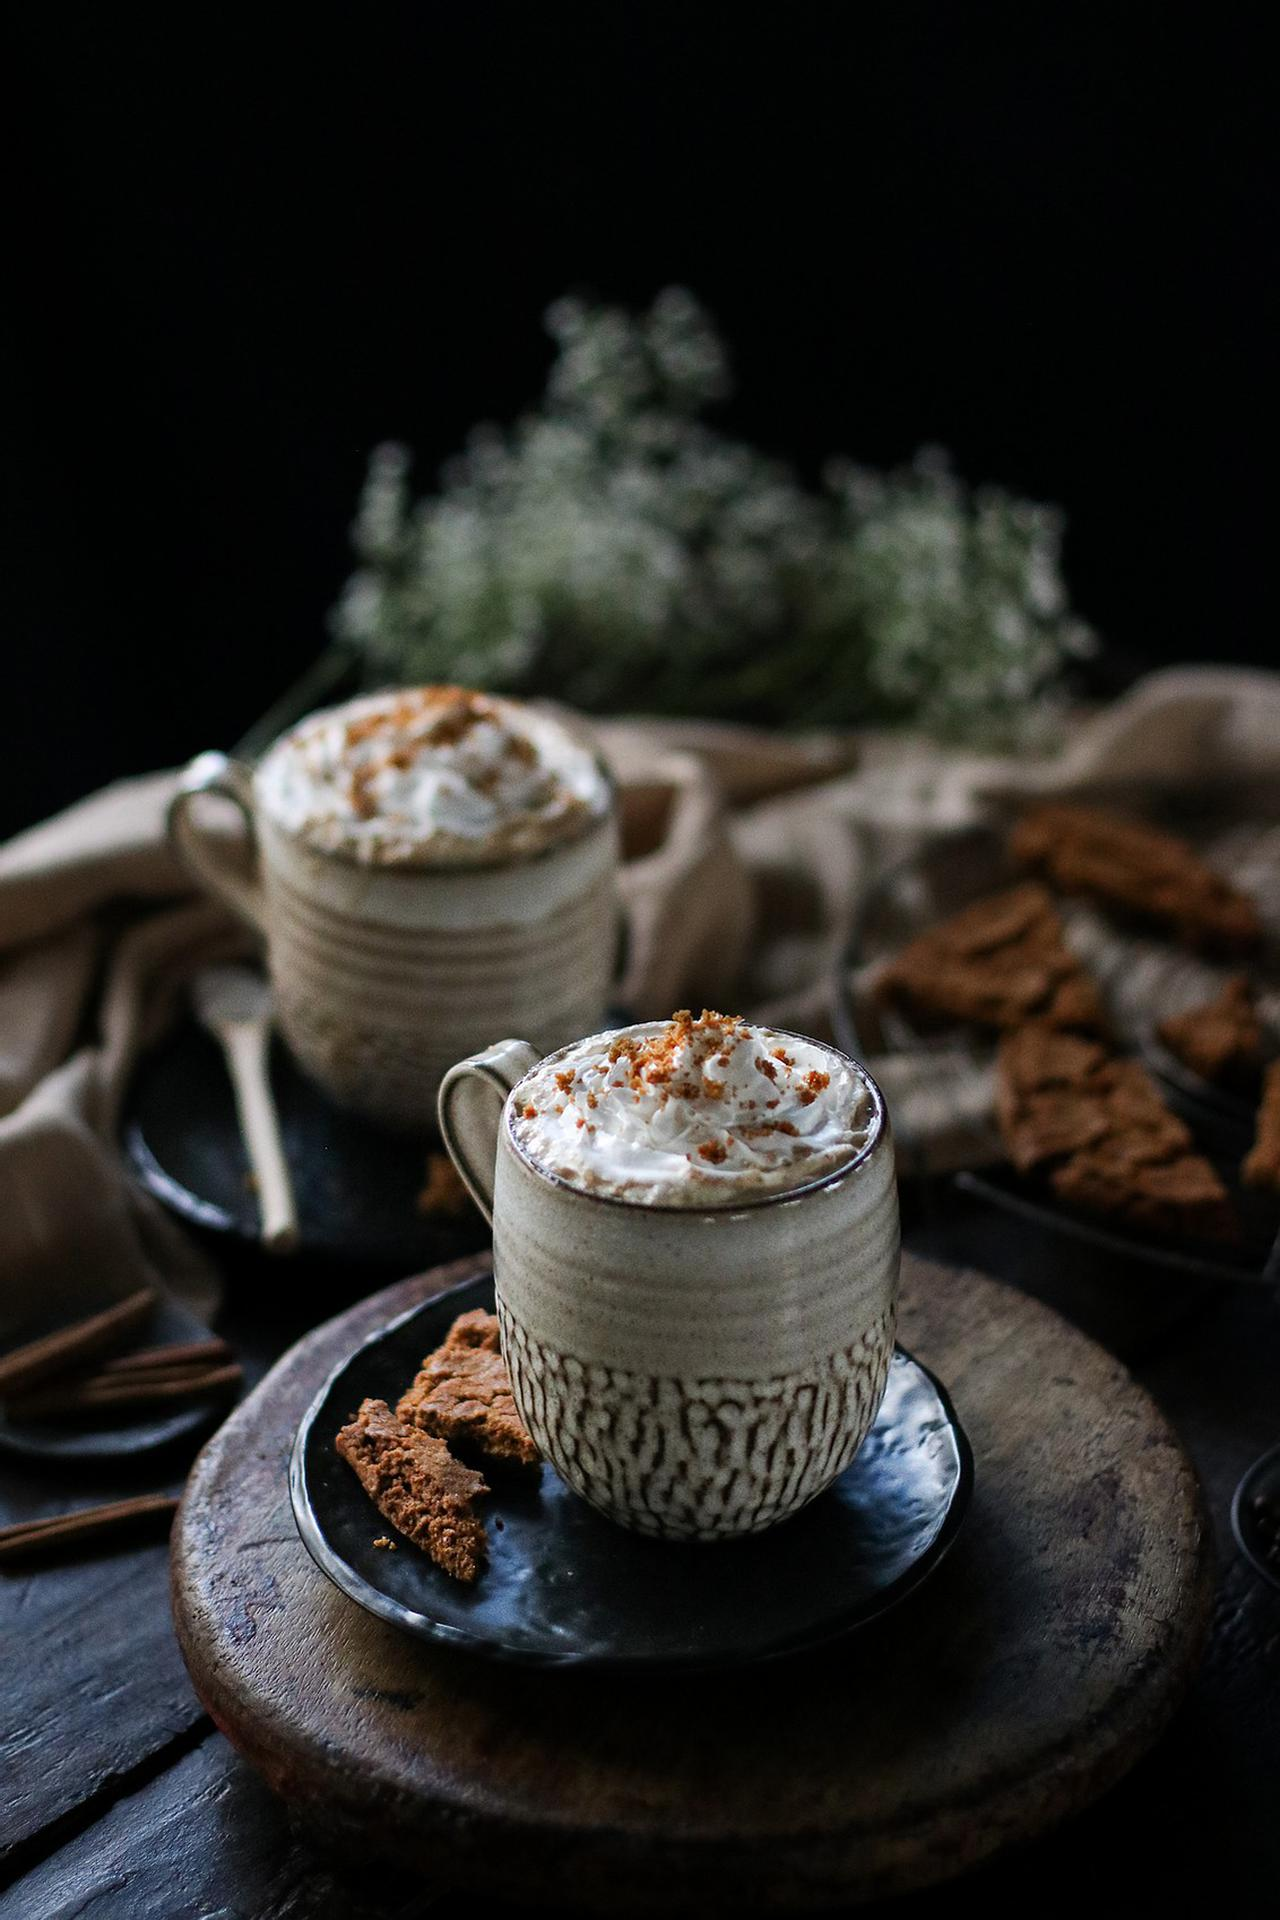 Main image of Vegan Gingerbread Latte